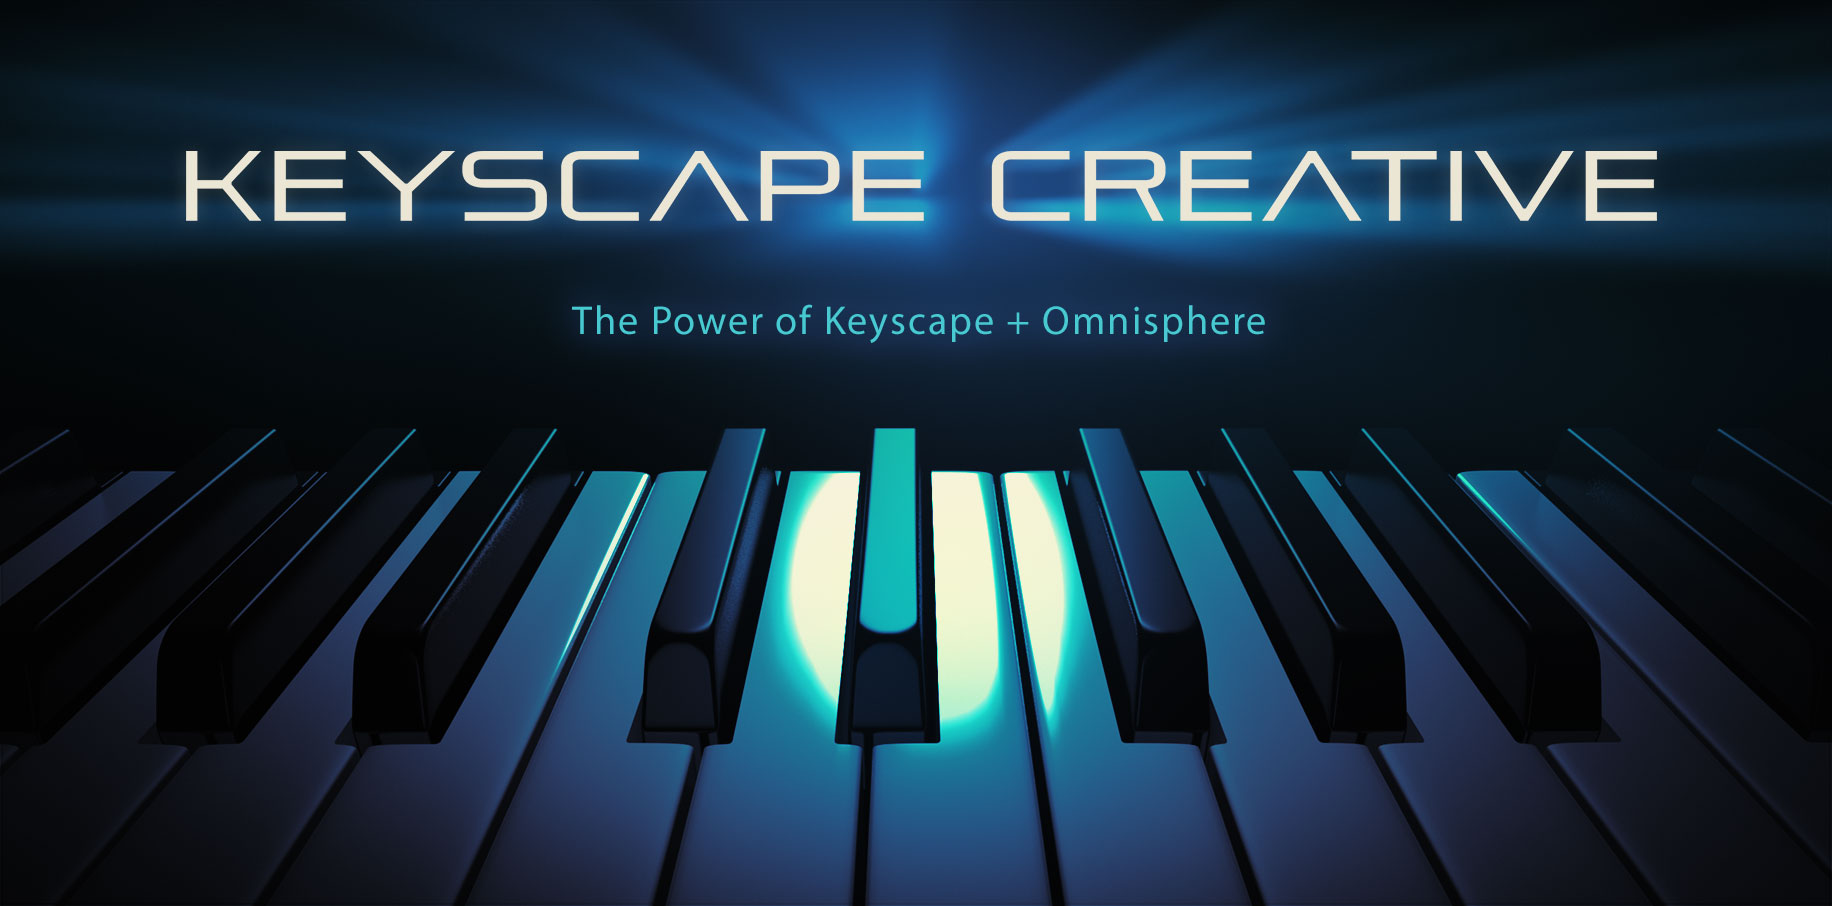 Spectrasonics - Keyscape Creative Library